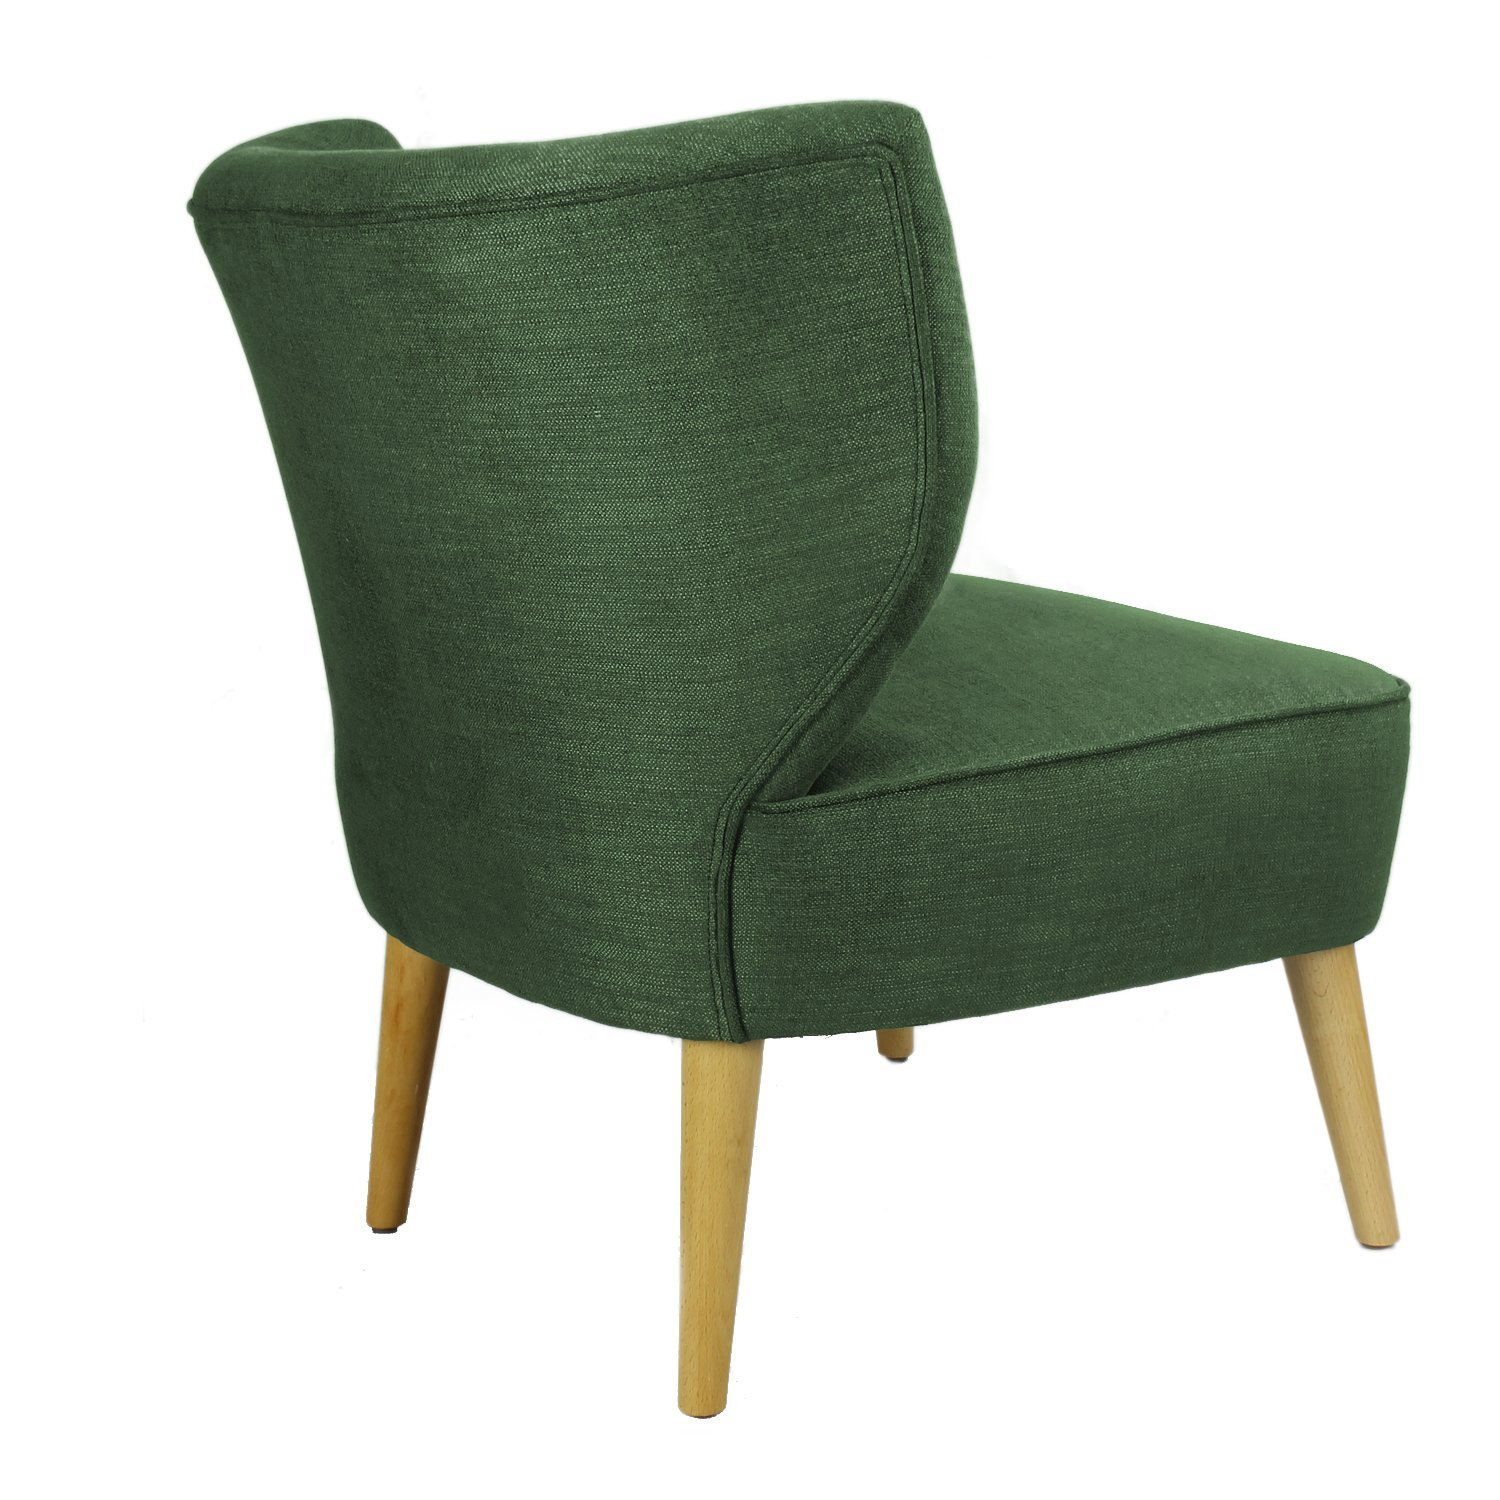 Astounding Asense Solid Color Fabric Mid Century Modern Contemporary Armchair Accent Chair With Wooden Leg Square Seat Green Machost Co Dining Chair Design Ideas Machostcouk